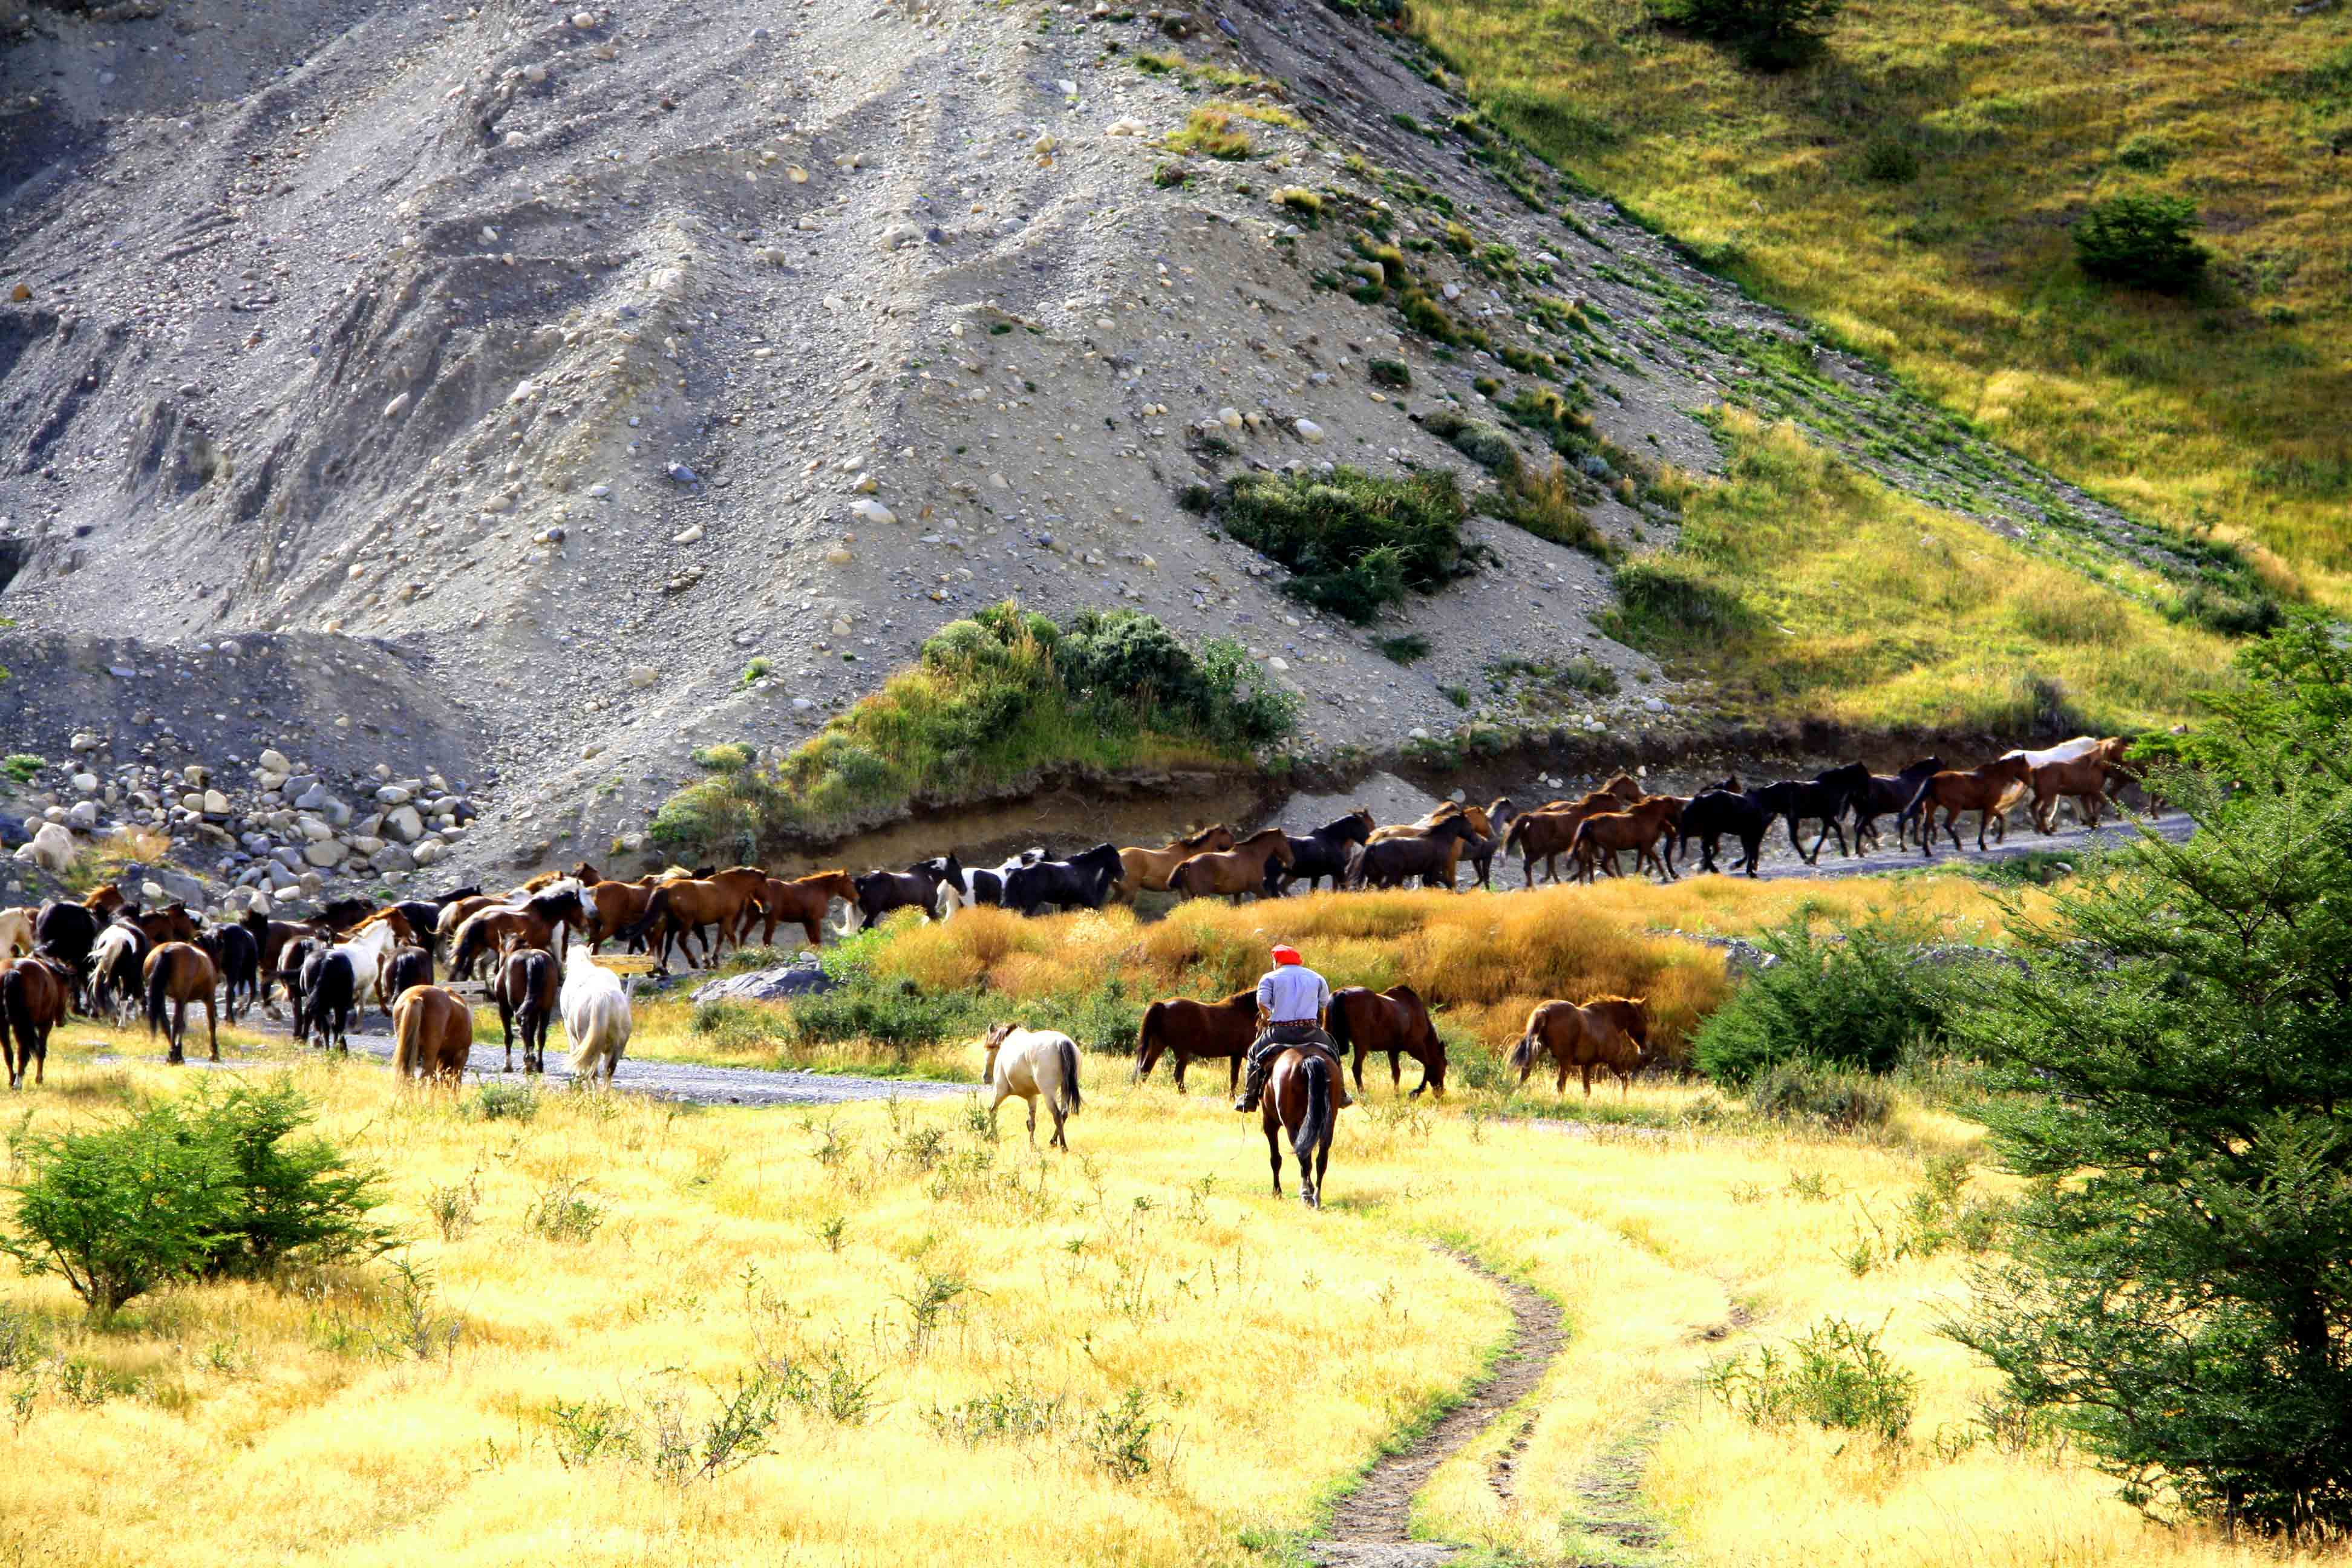 Gauchos torres del paine on their horses